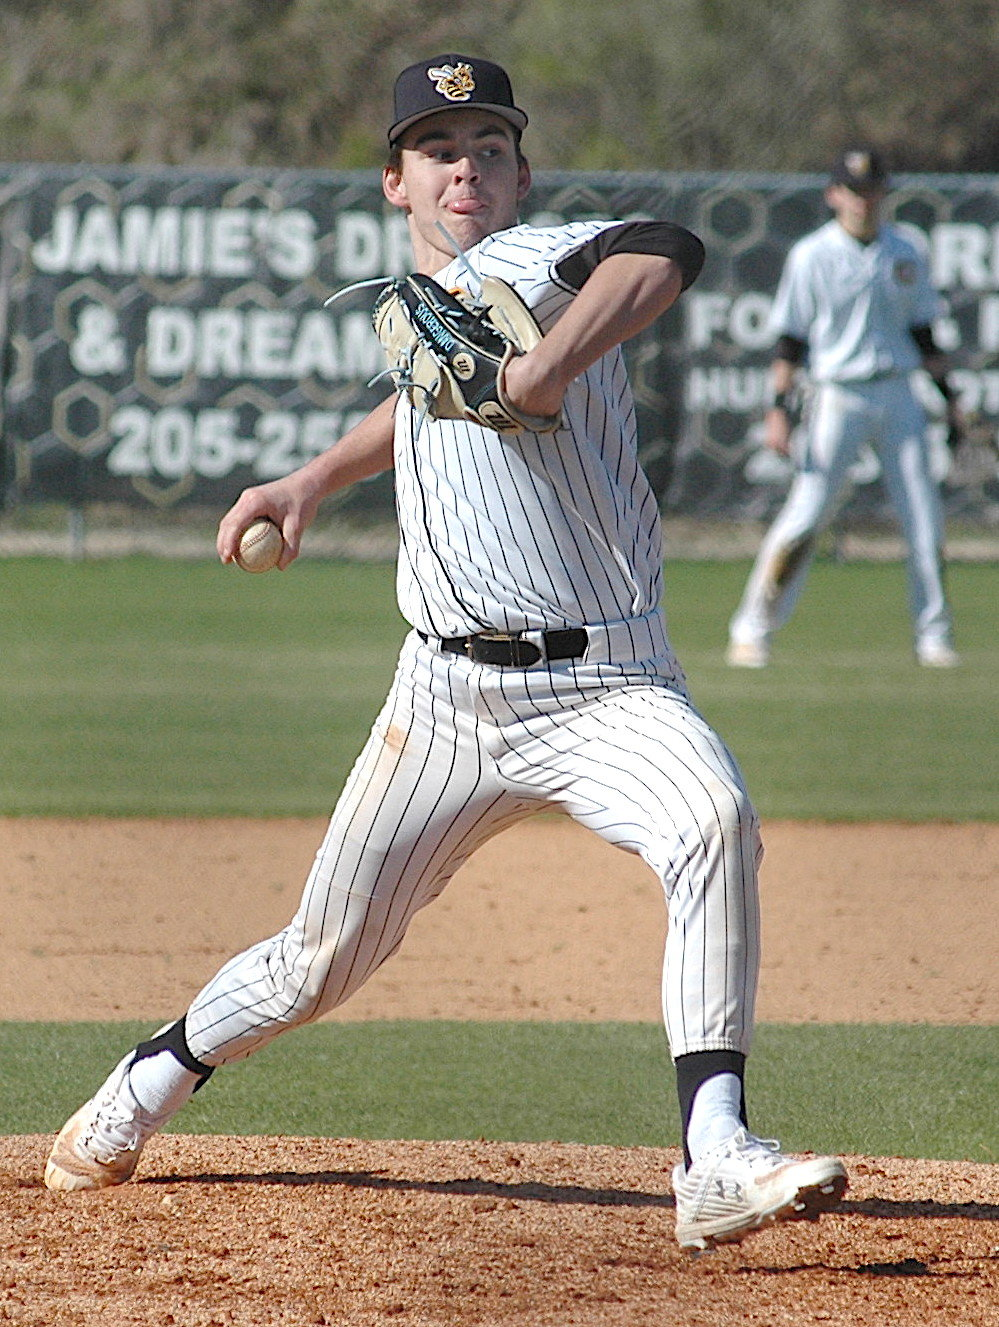 Corner's Colin Daniel throws a pitch against Moody during their game on Saturday. Daniel earned the win on the mound.